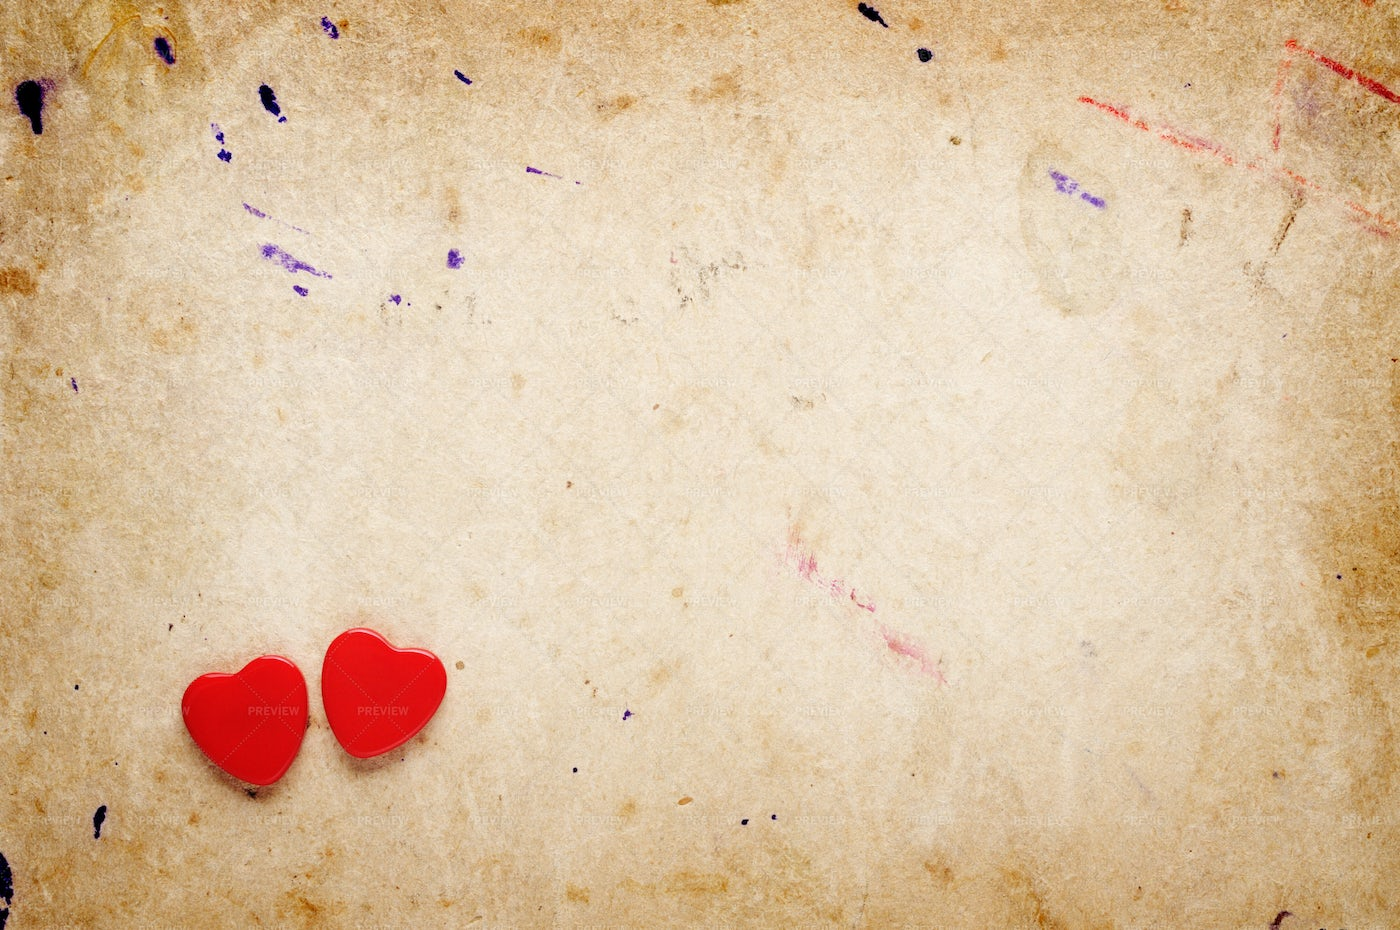 Two Red Hearts On Old Paper Background: Stock Photos